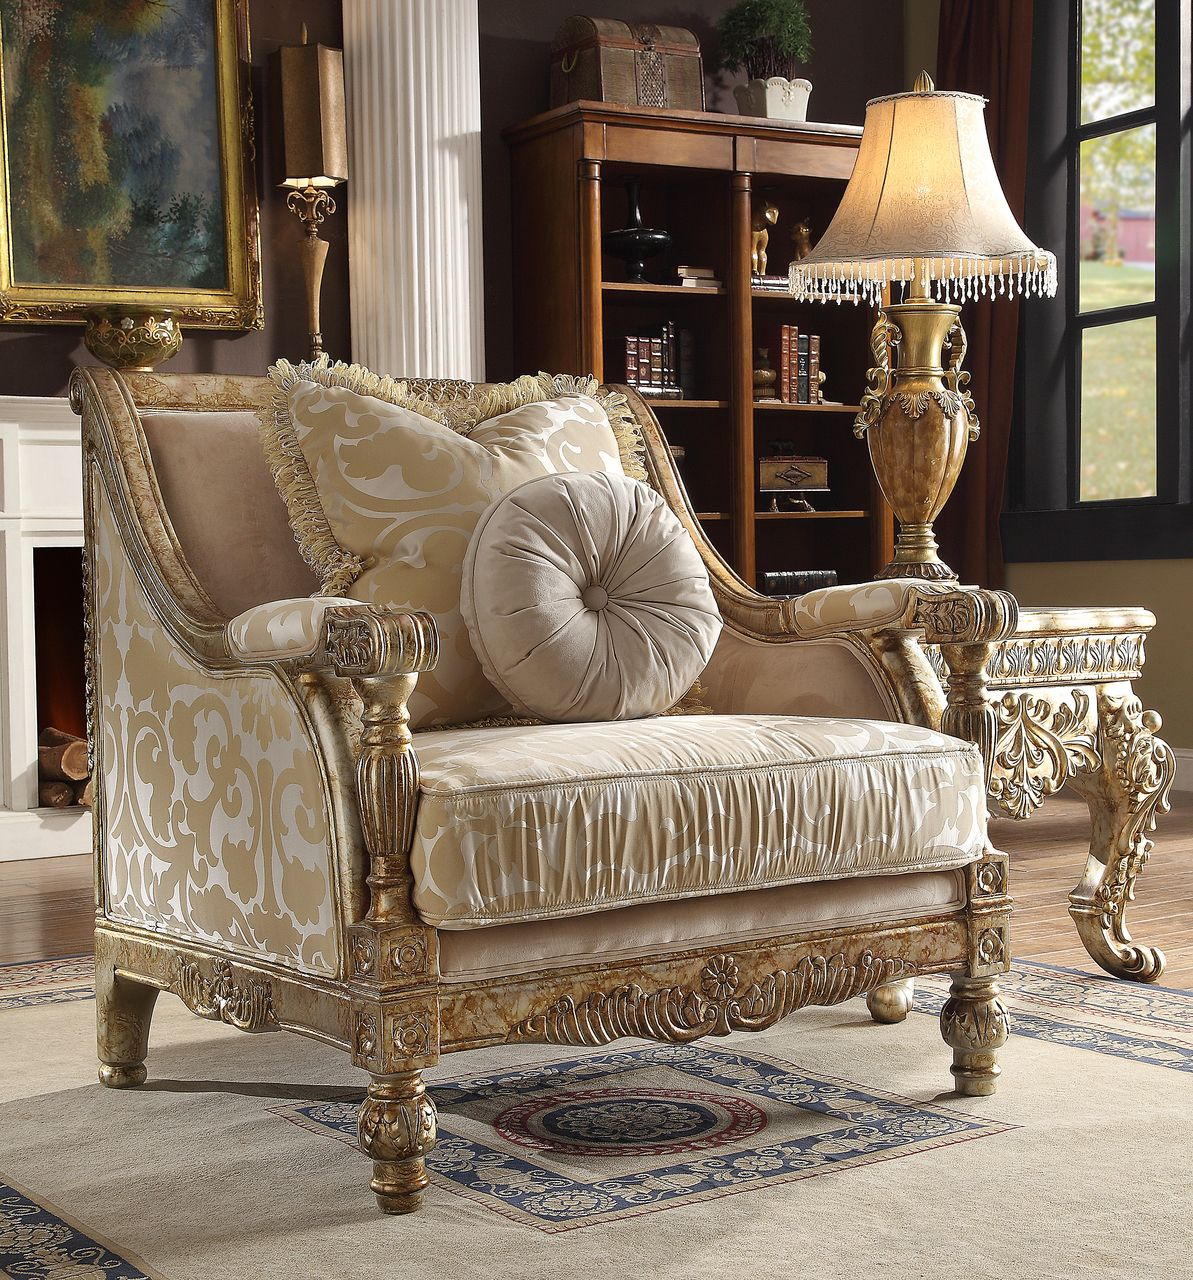 Homey Design Hd 205 Sofa Chair For 896 Classic Furniture Design Furniture Design Shabby Chic Decor Living Room